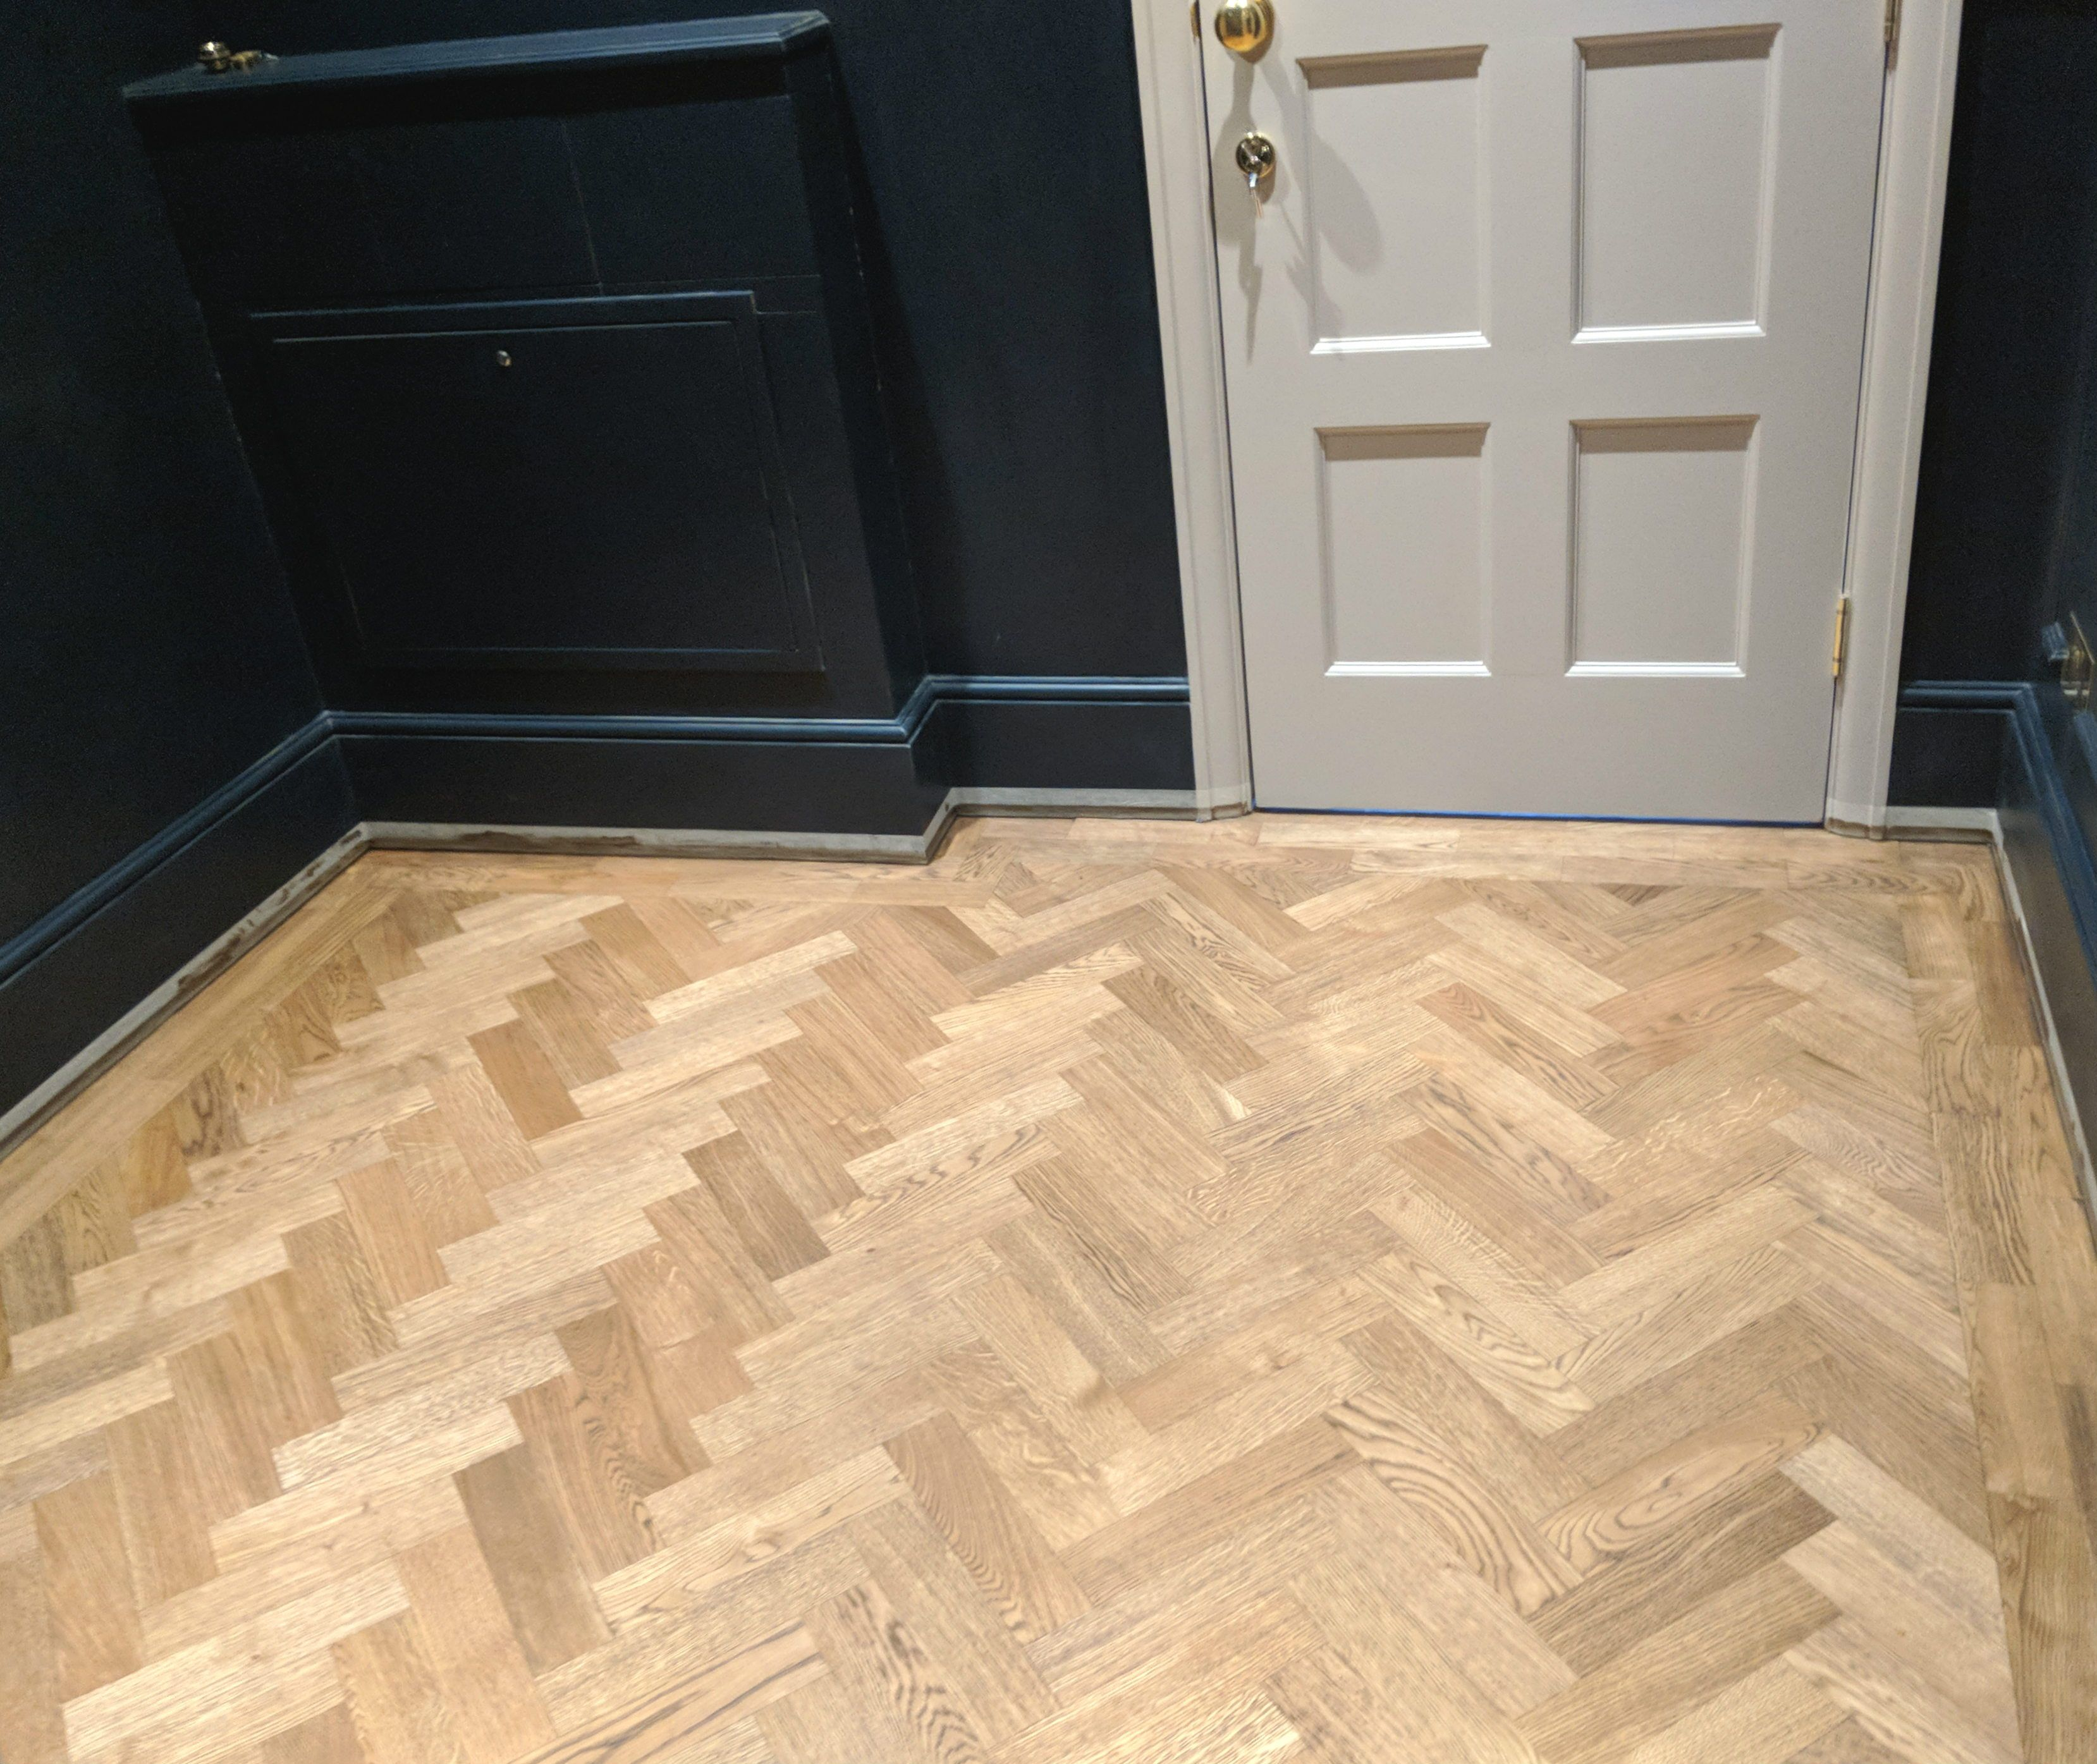 This Is Our Oak Parquet Flooring As Fitted By Fin Wood Ltd In A Cloakroom In A House In Surrey Wood Parquet Flooring Engineered Parquet Flooring Flooring